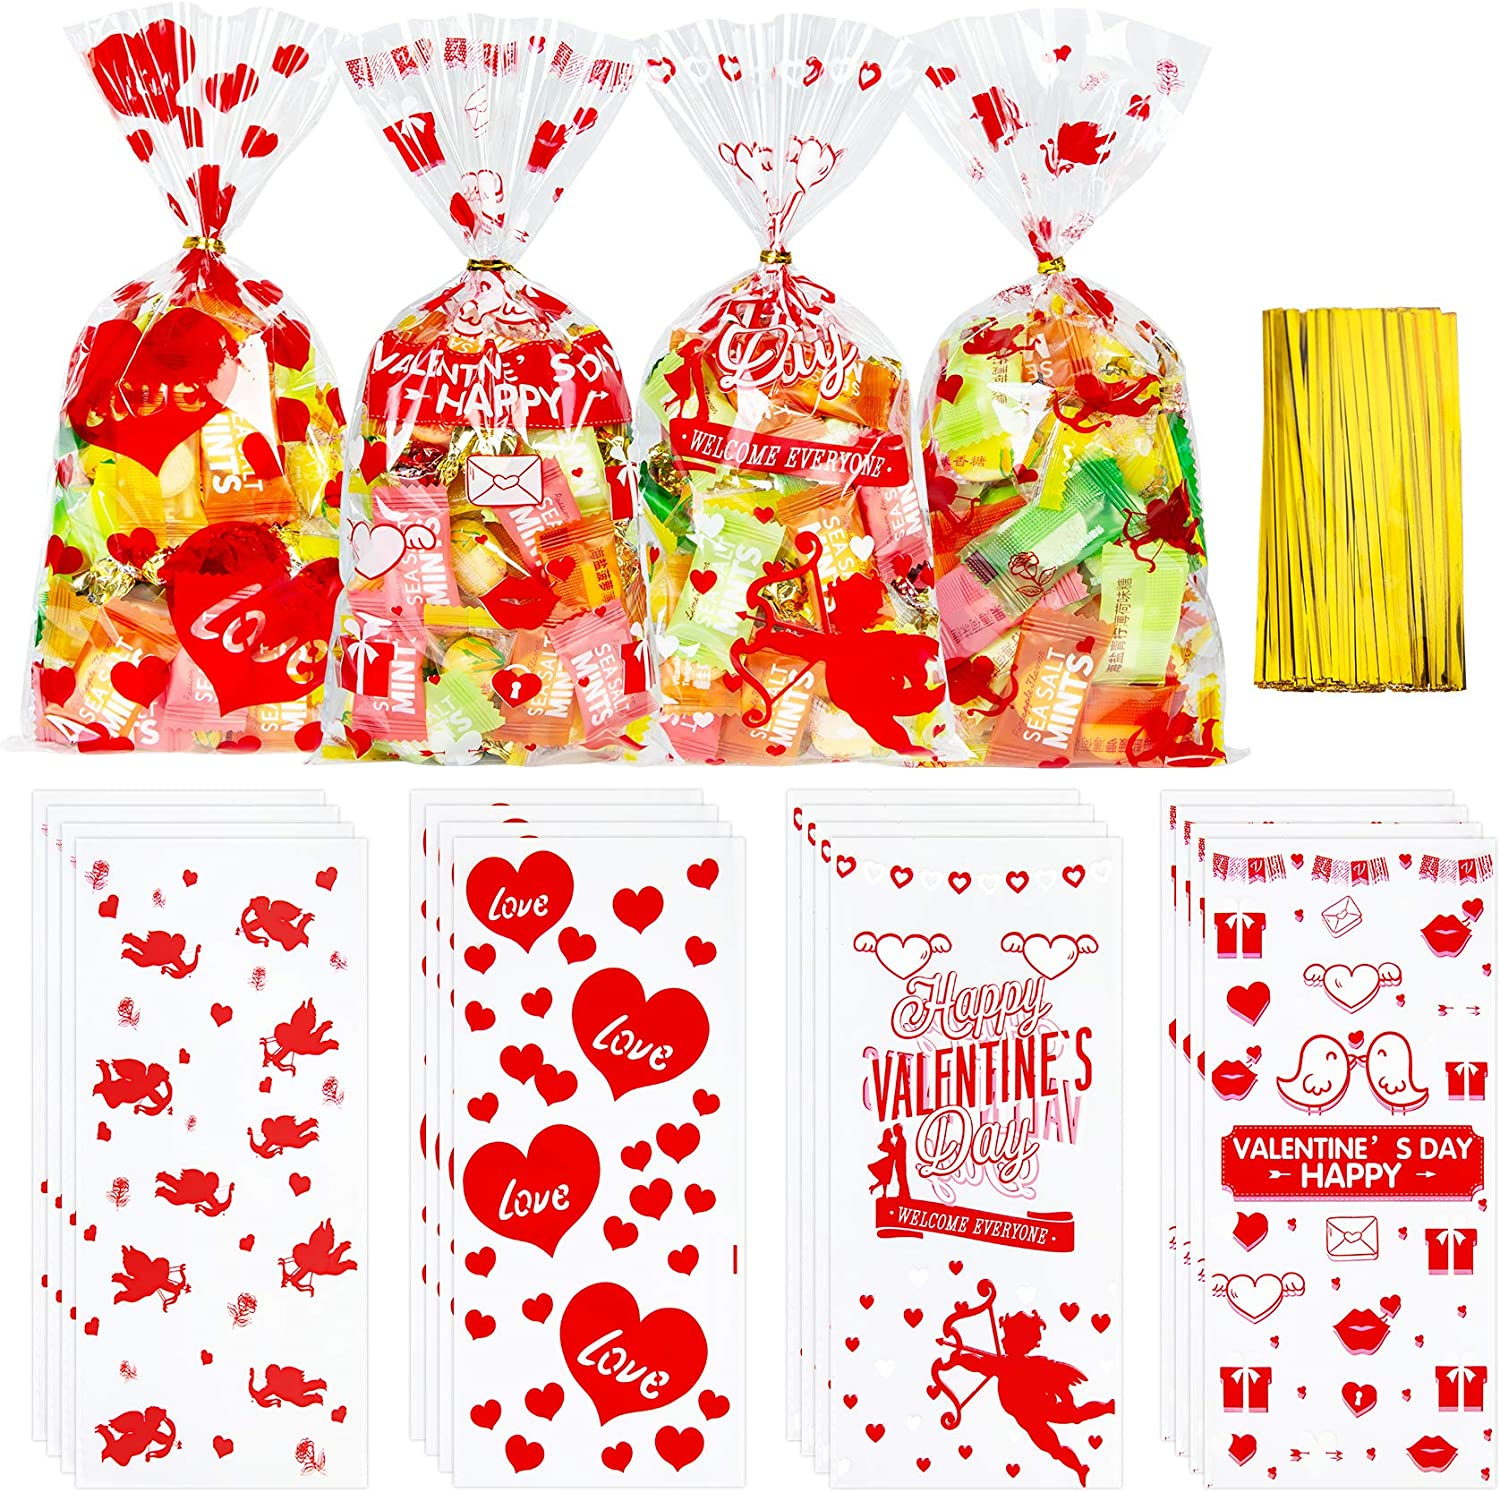 Unves 100 Pcs Valentine Treat Bags (4 Assorted Styles), Valentine Cellophane Bags Resealable for Birthday Party Wedding Baby Shower Bridal Shower Holiday Party.